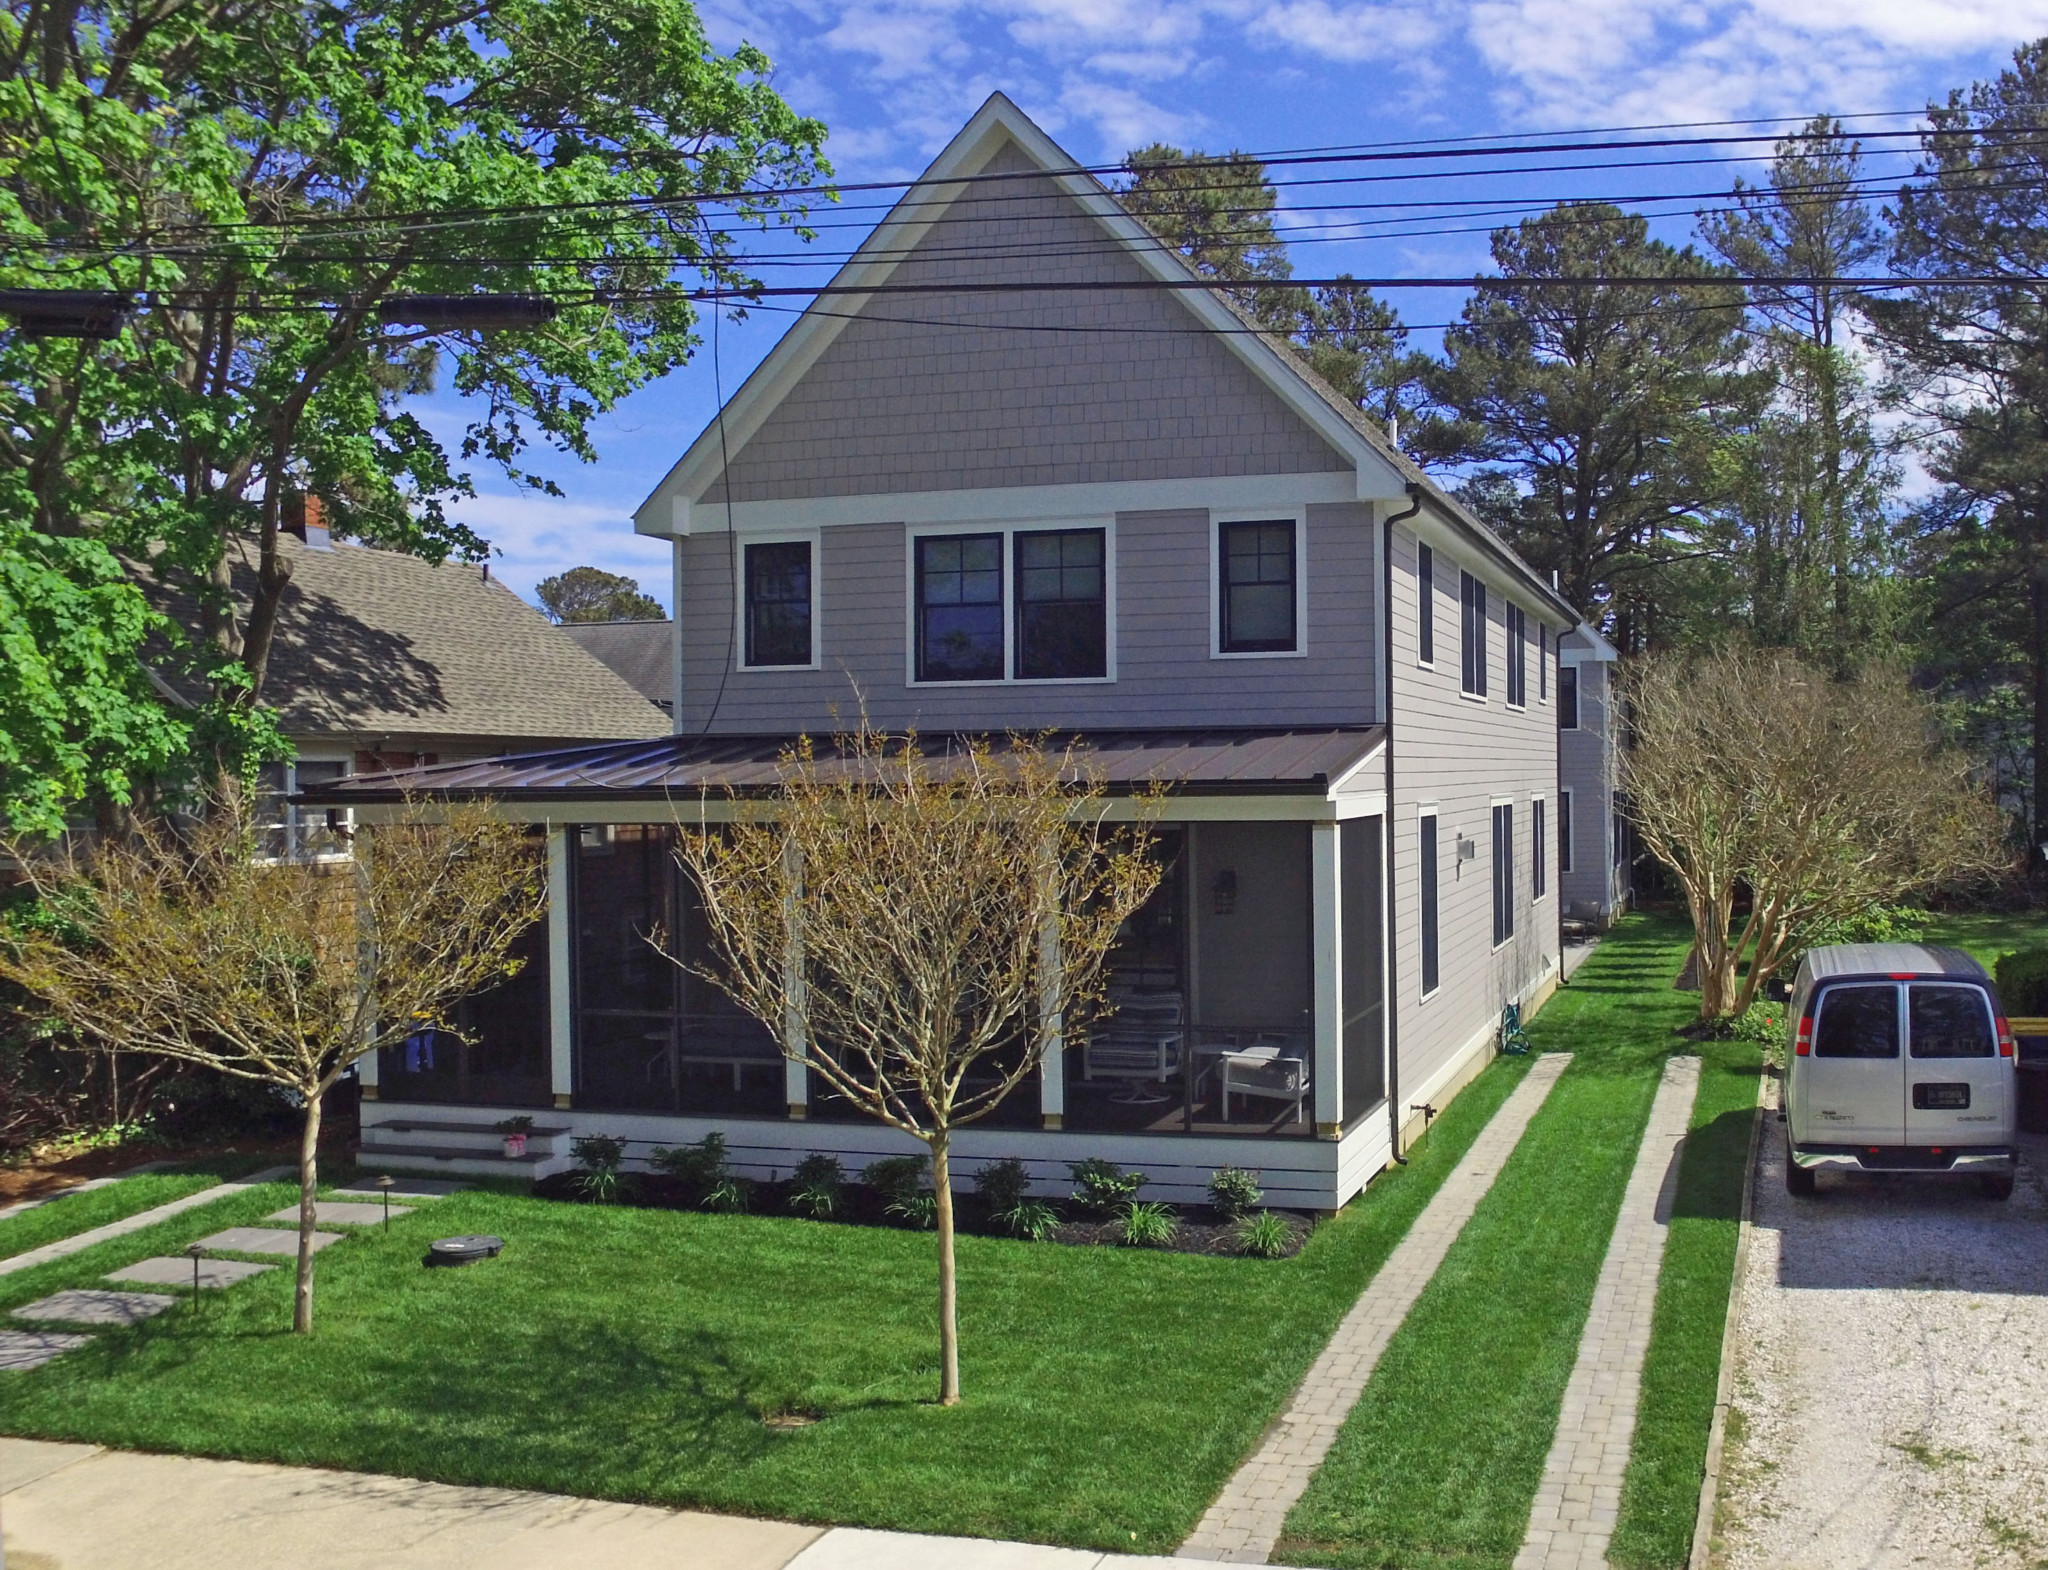 Rehoboth house rentals 28 images 200 laurel street for Rehoboth house